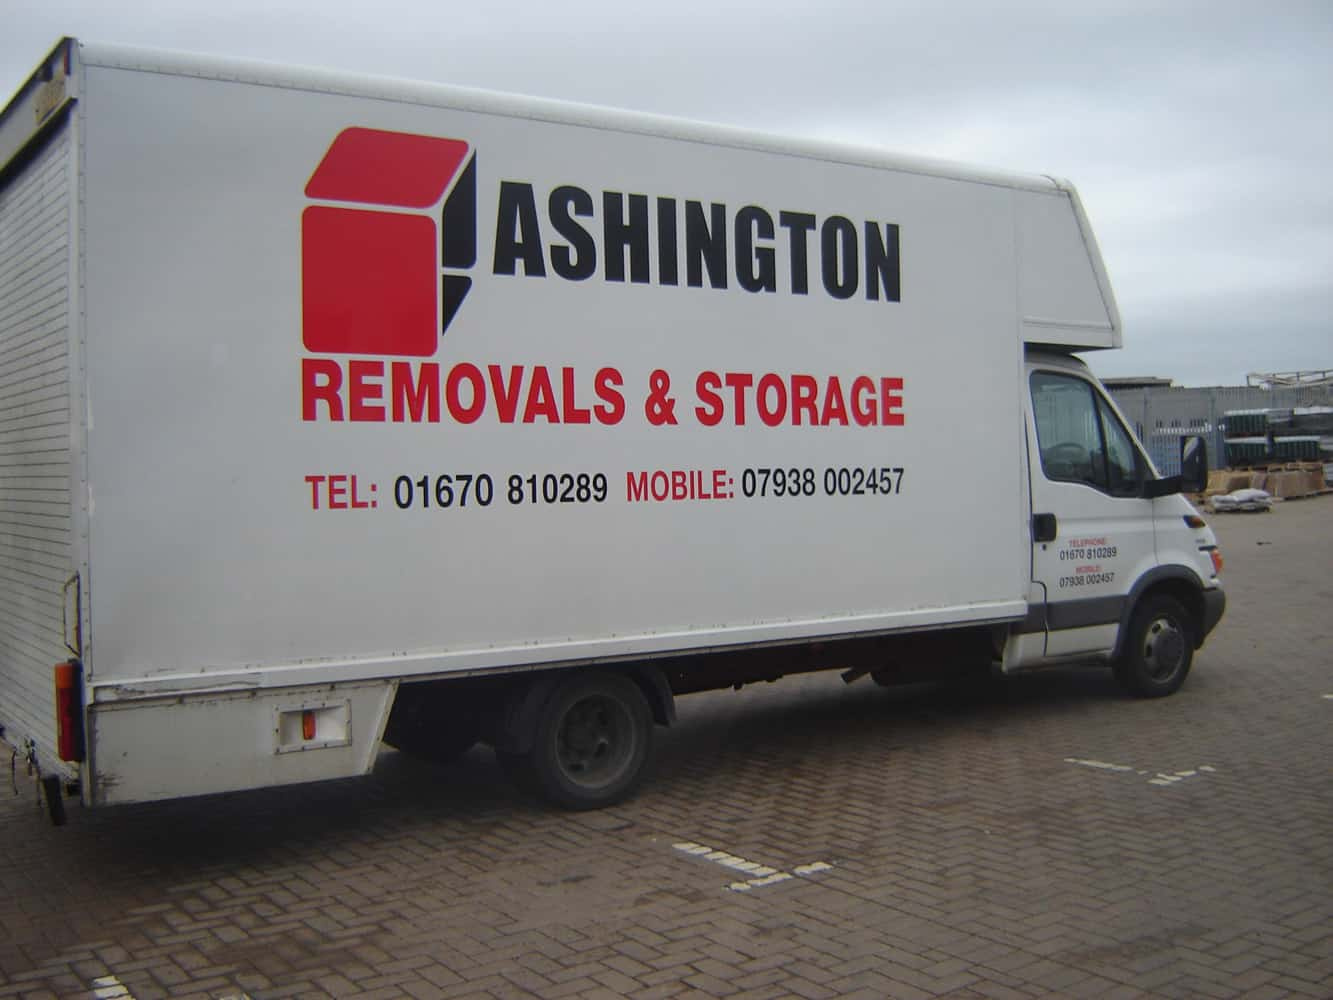 Wallsend Best Removal Company